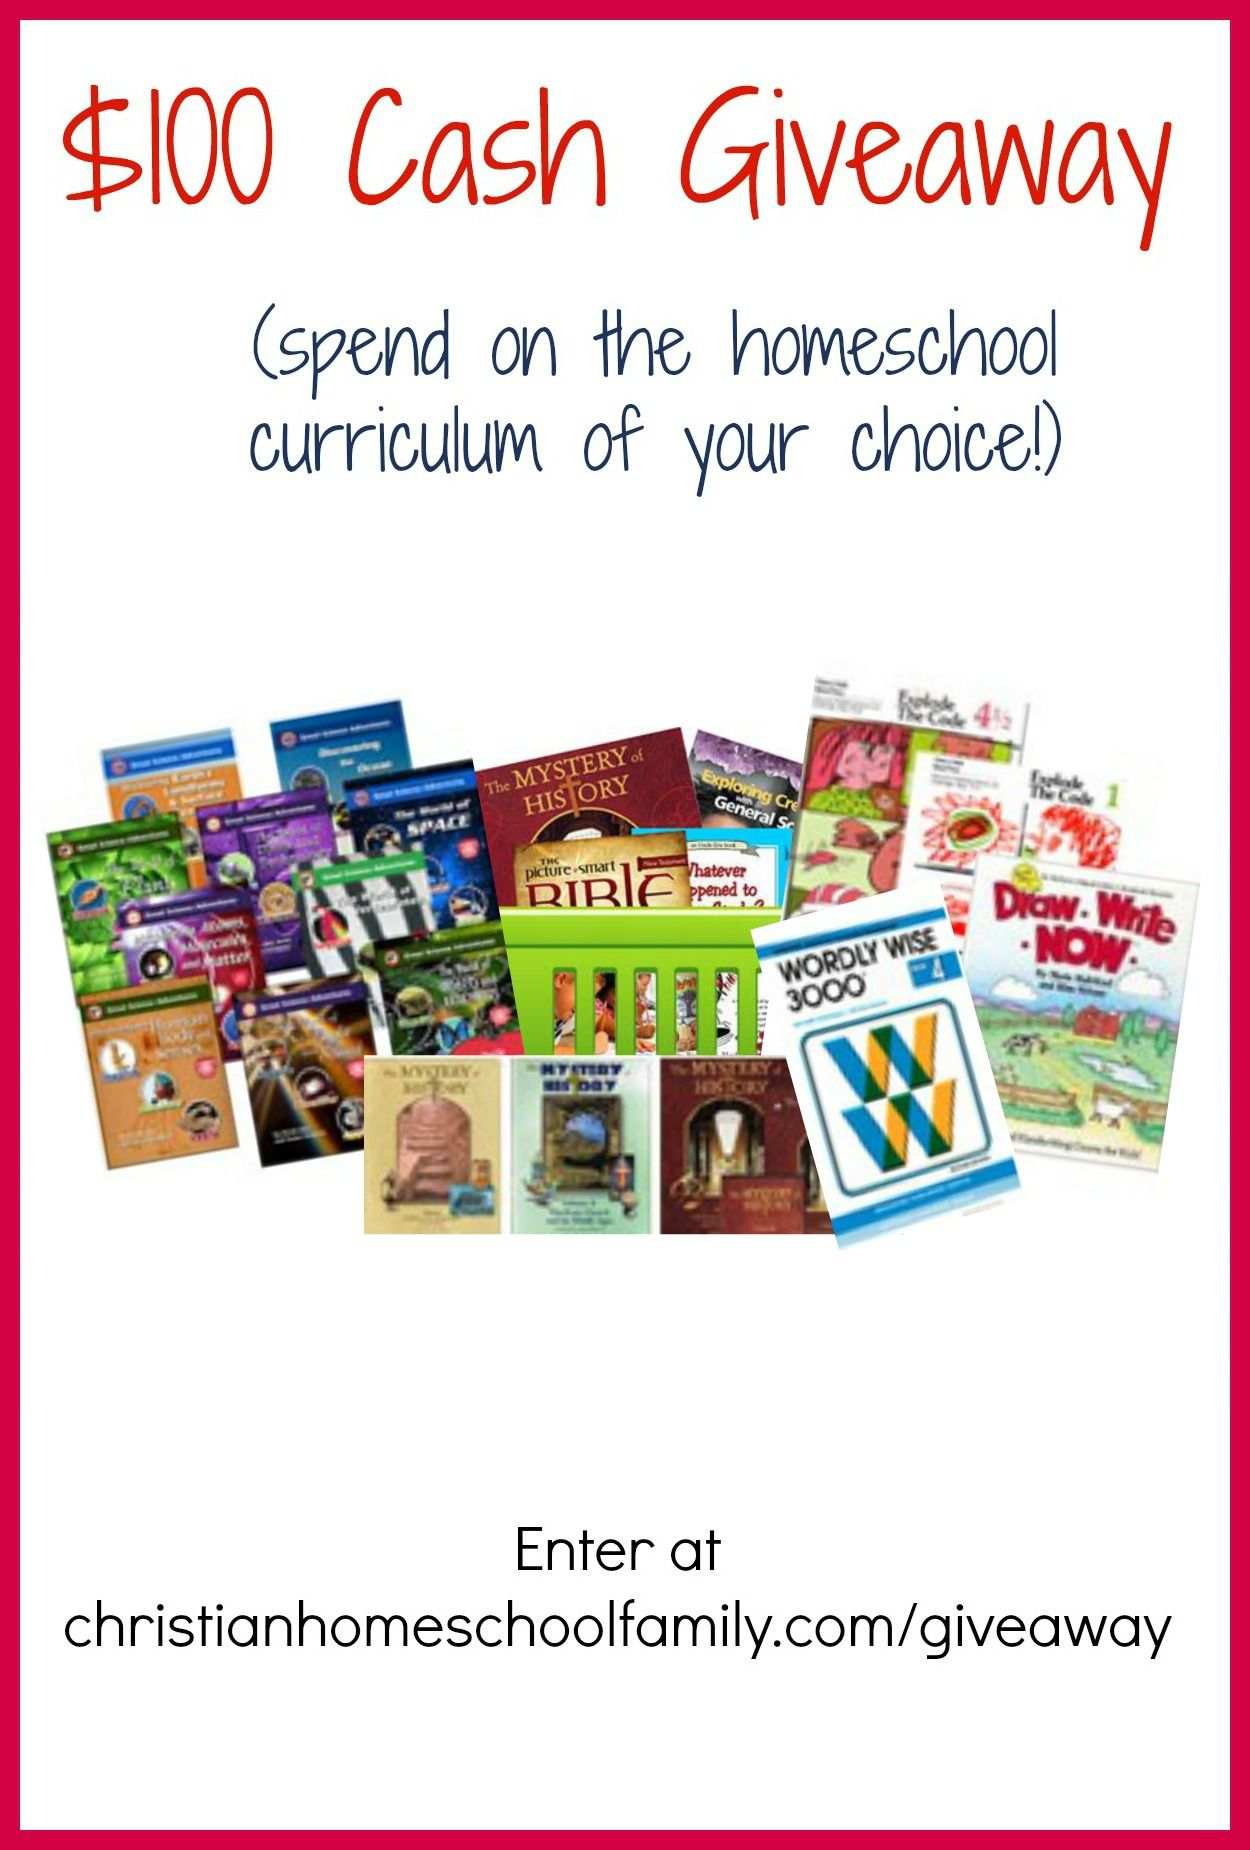 Homeschool Curriculum Giveaway With Images